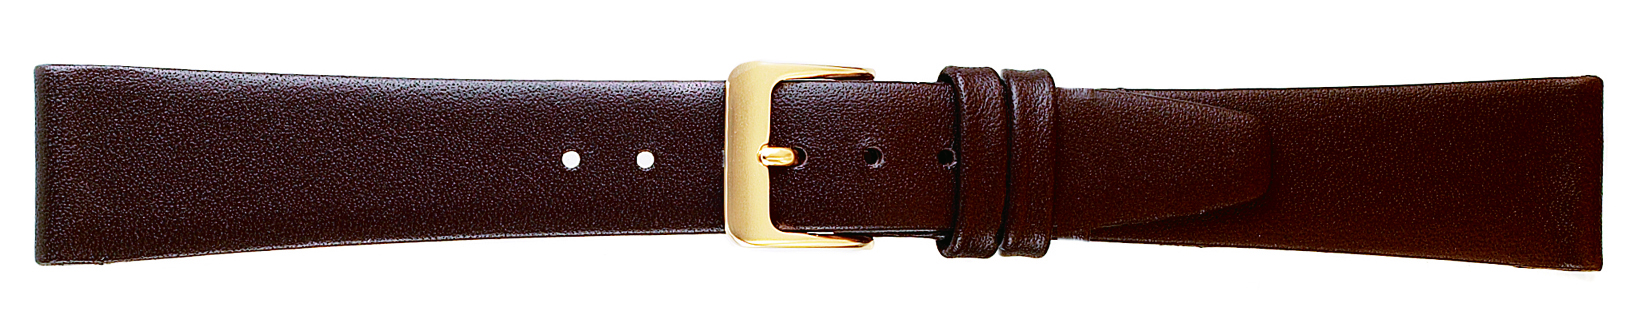 18MM Leather Band Brown Smooth Calf-0